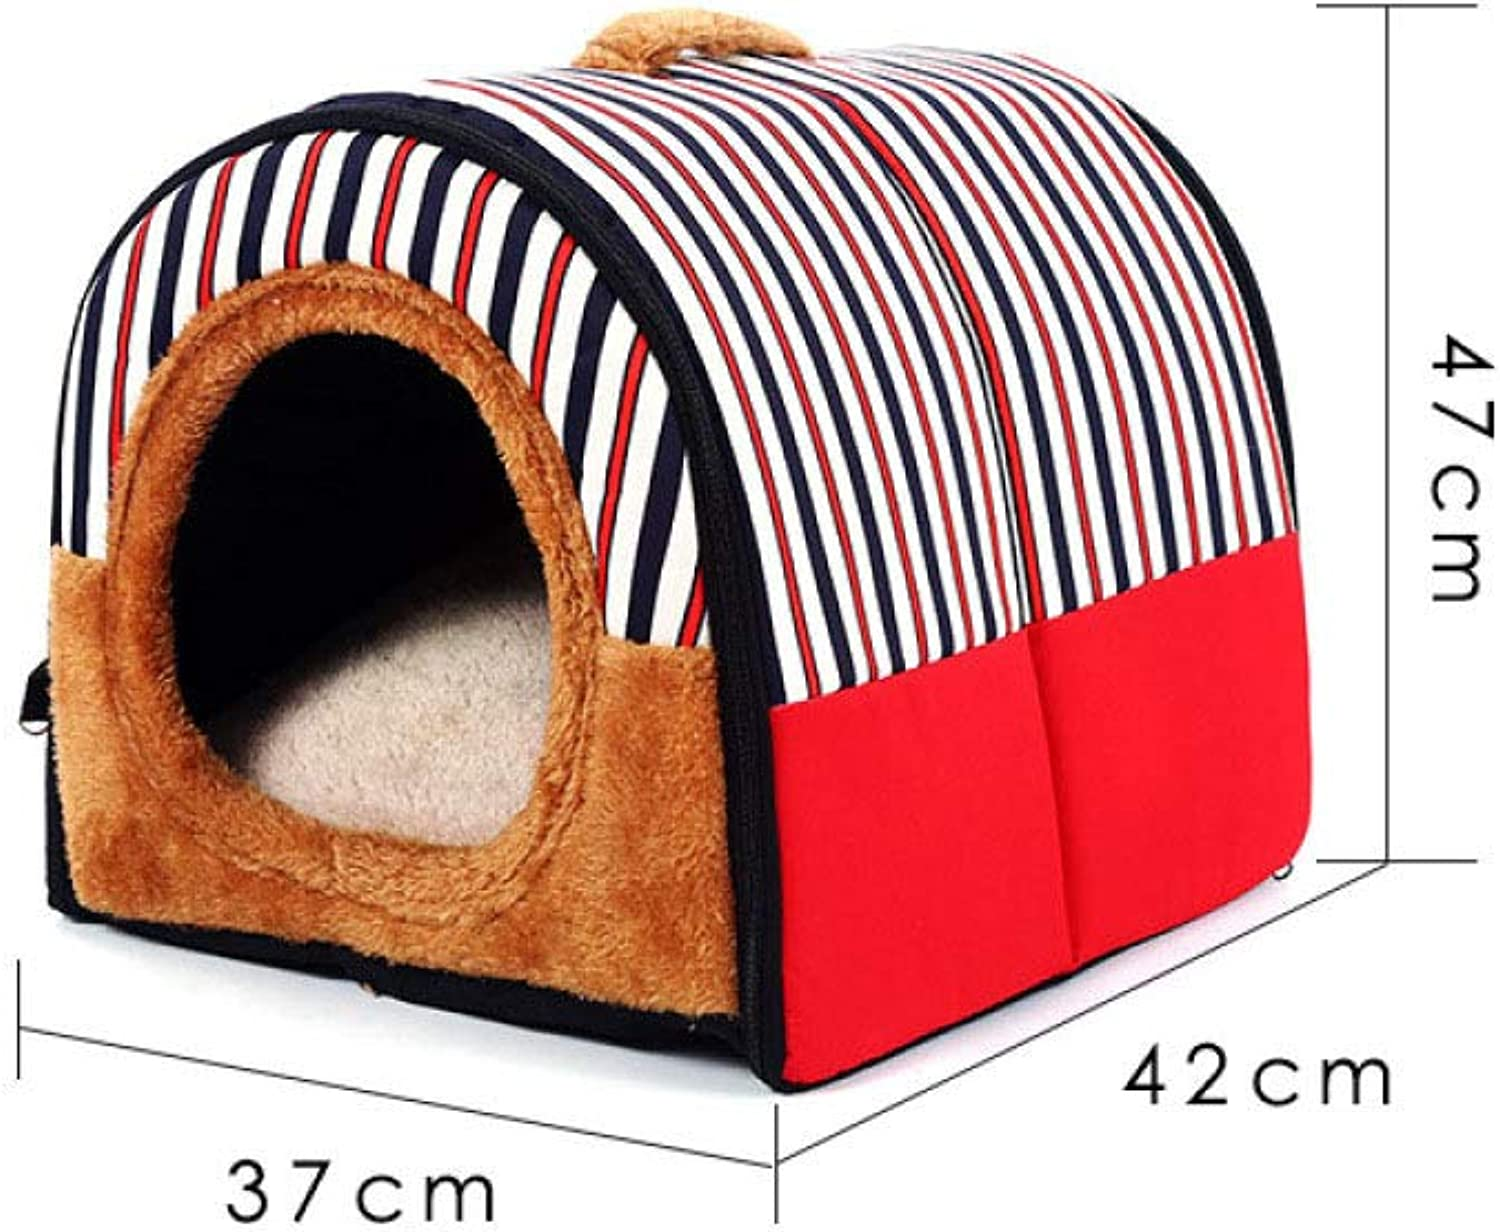 JIAQING Pet Kennel Removable And Washable Four Seasons Universal golden Retriever Small Medium Dog Pet Nest Warm Cloth Cat Litter,Red(42  37  47CM)